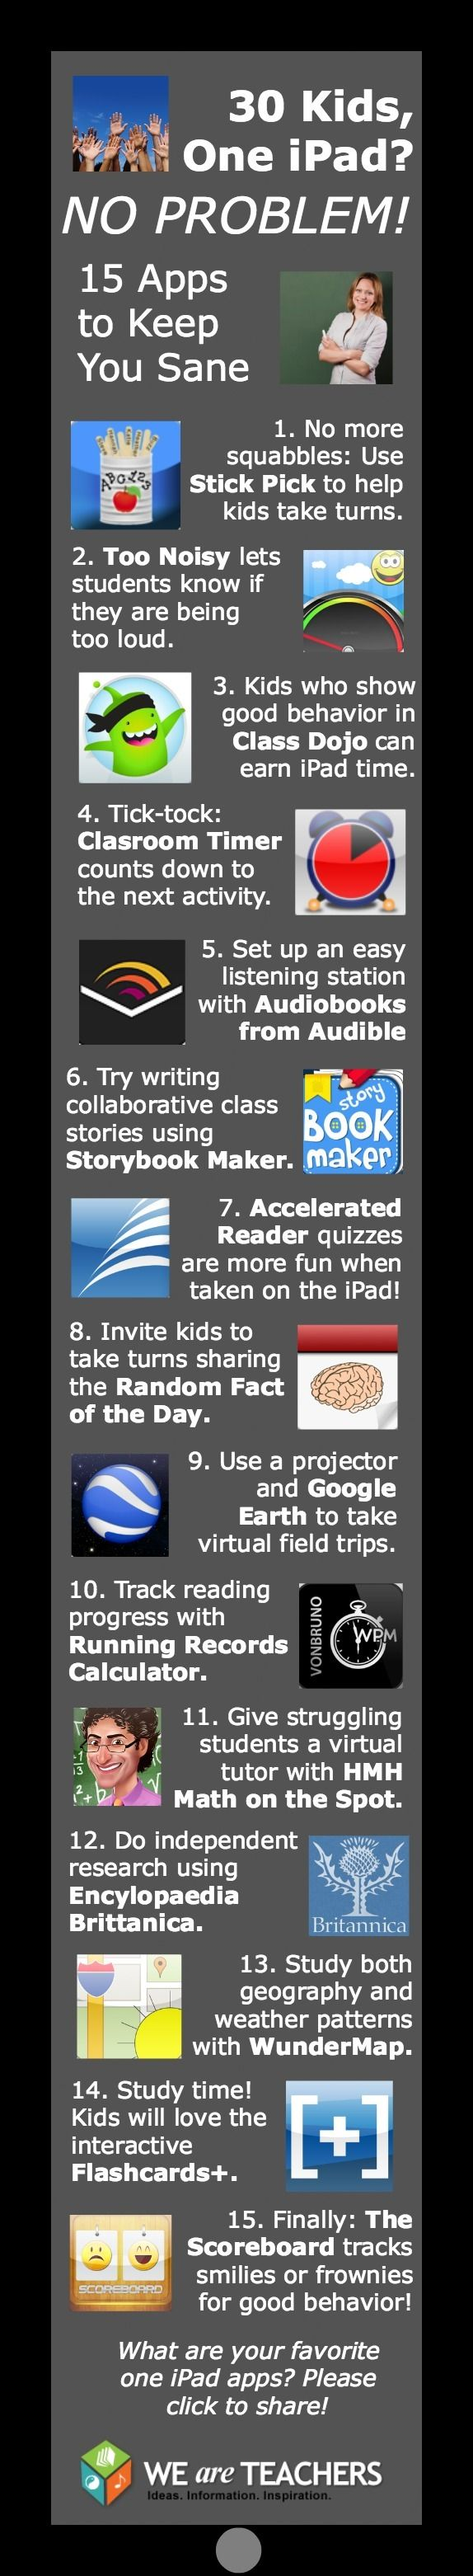 Technology in the classroom: 15 apps that work great with a one iPad setup AND help to keep kids on task and engaged with what you are learning.